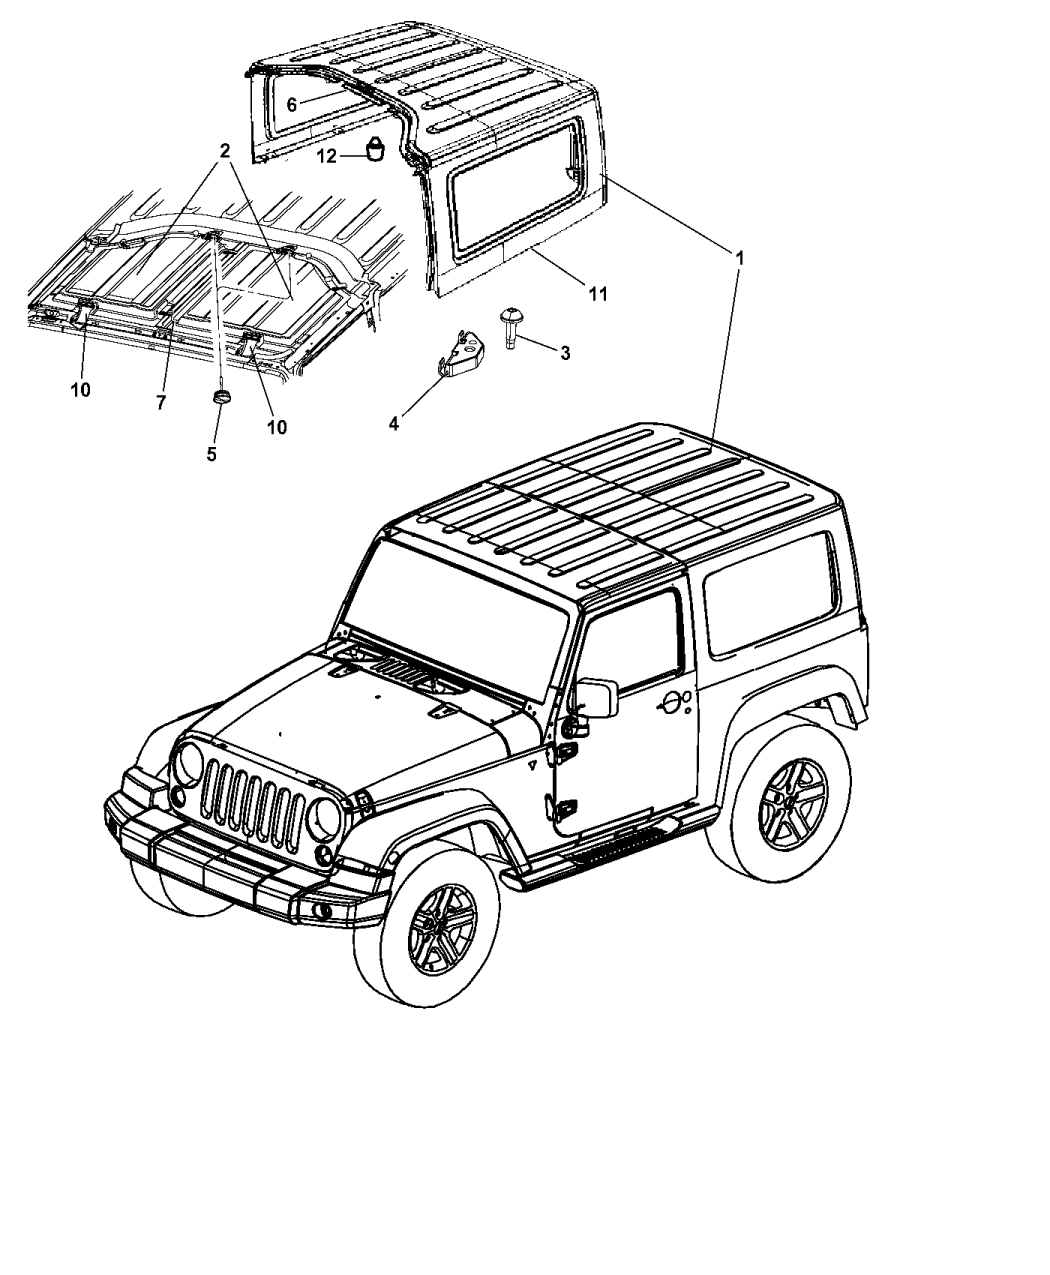 68088042AA - Genuine Jeep SEAL-HARD TOP FRONT